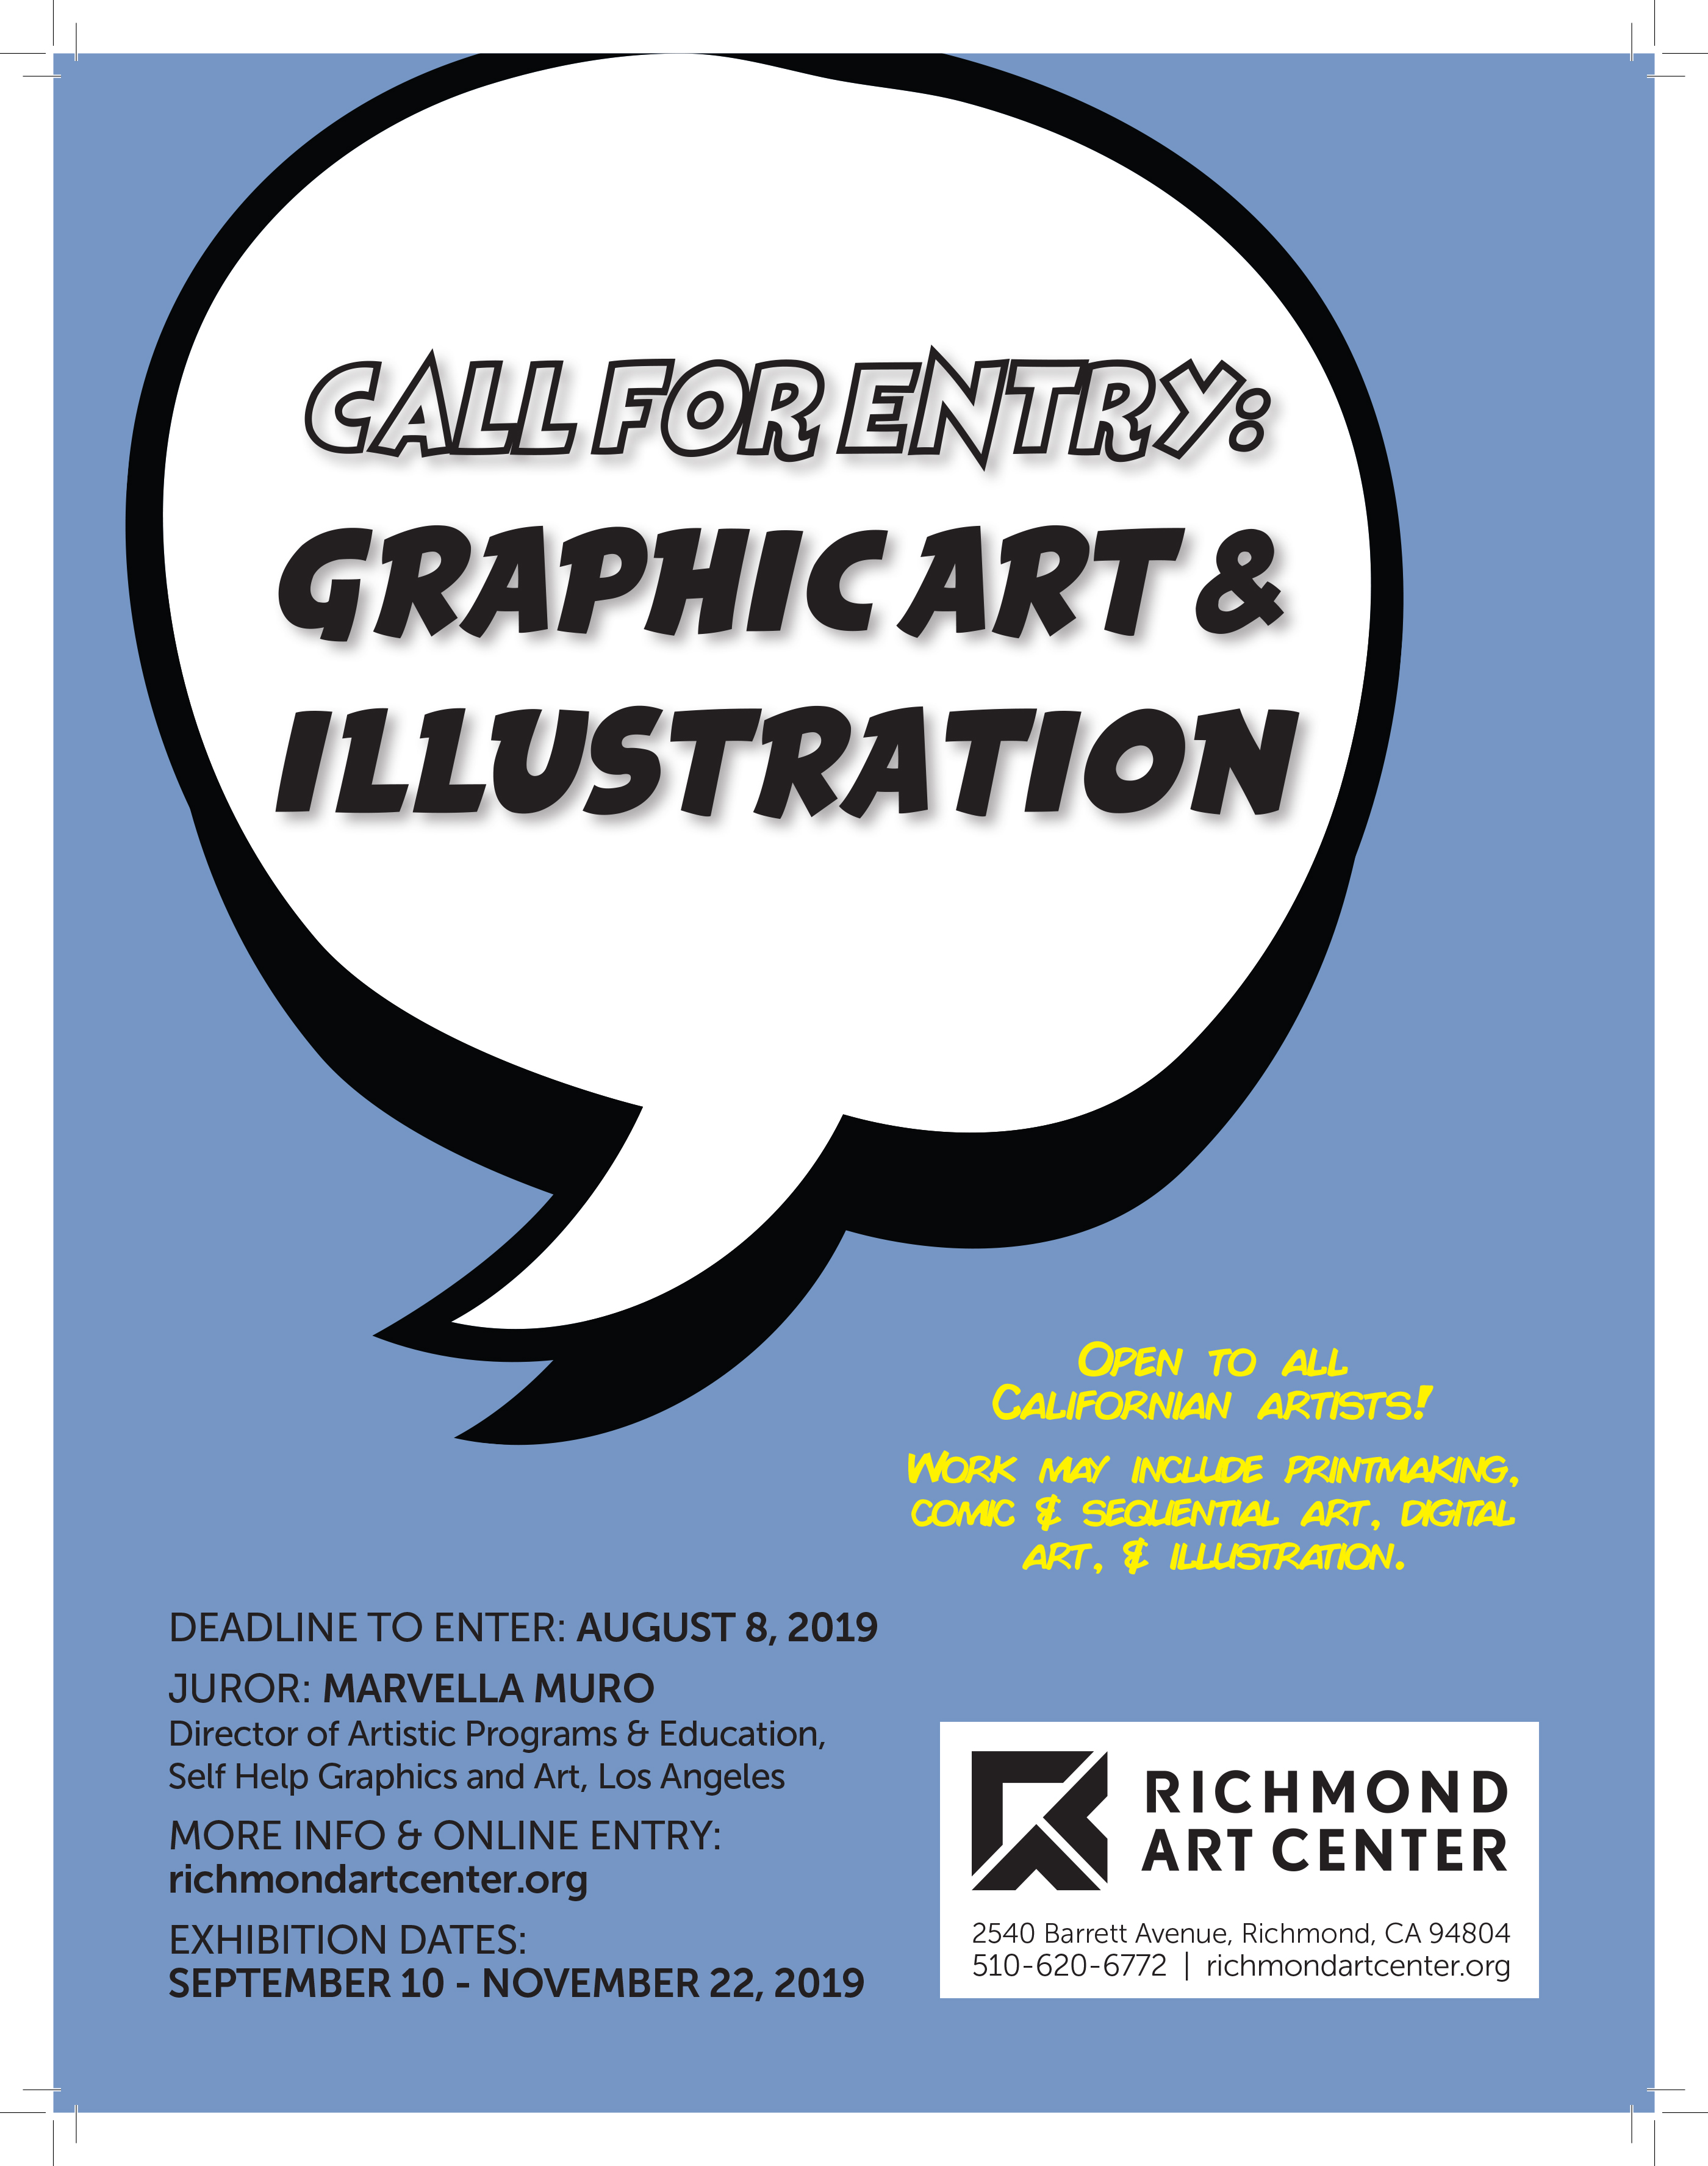 Richmond Art Center invites submissions of graphic art and